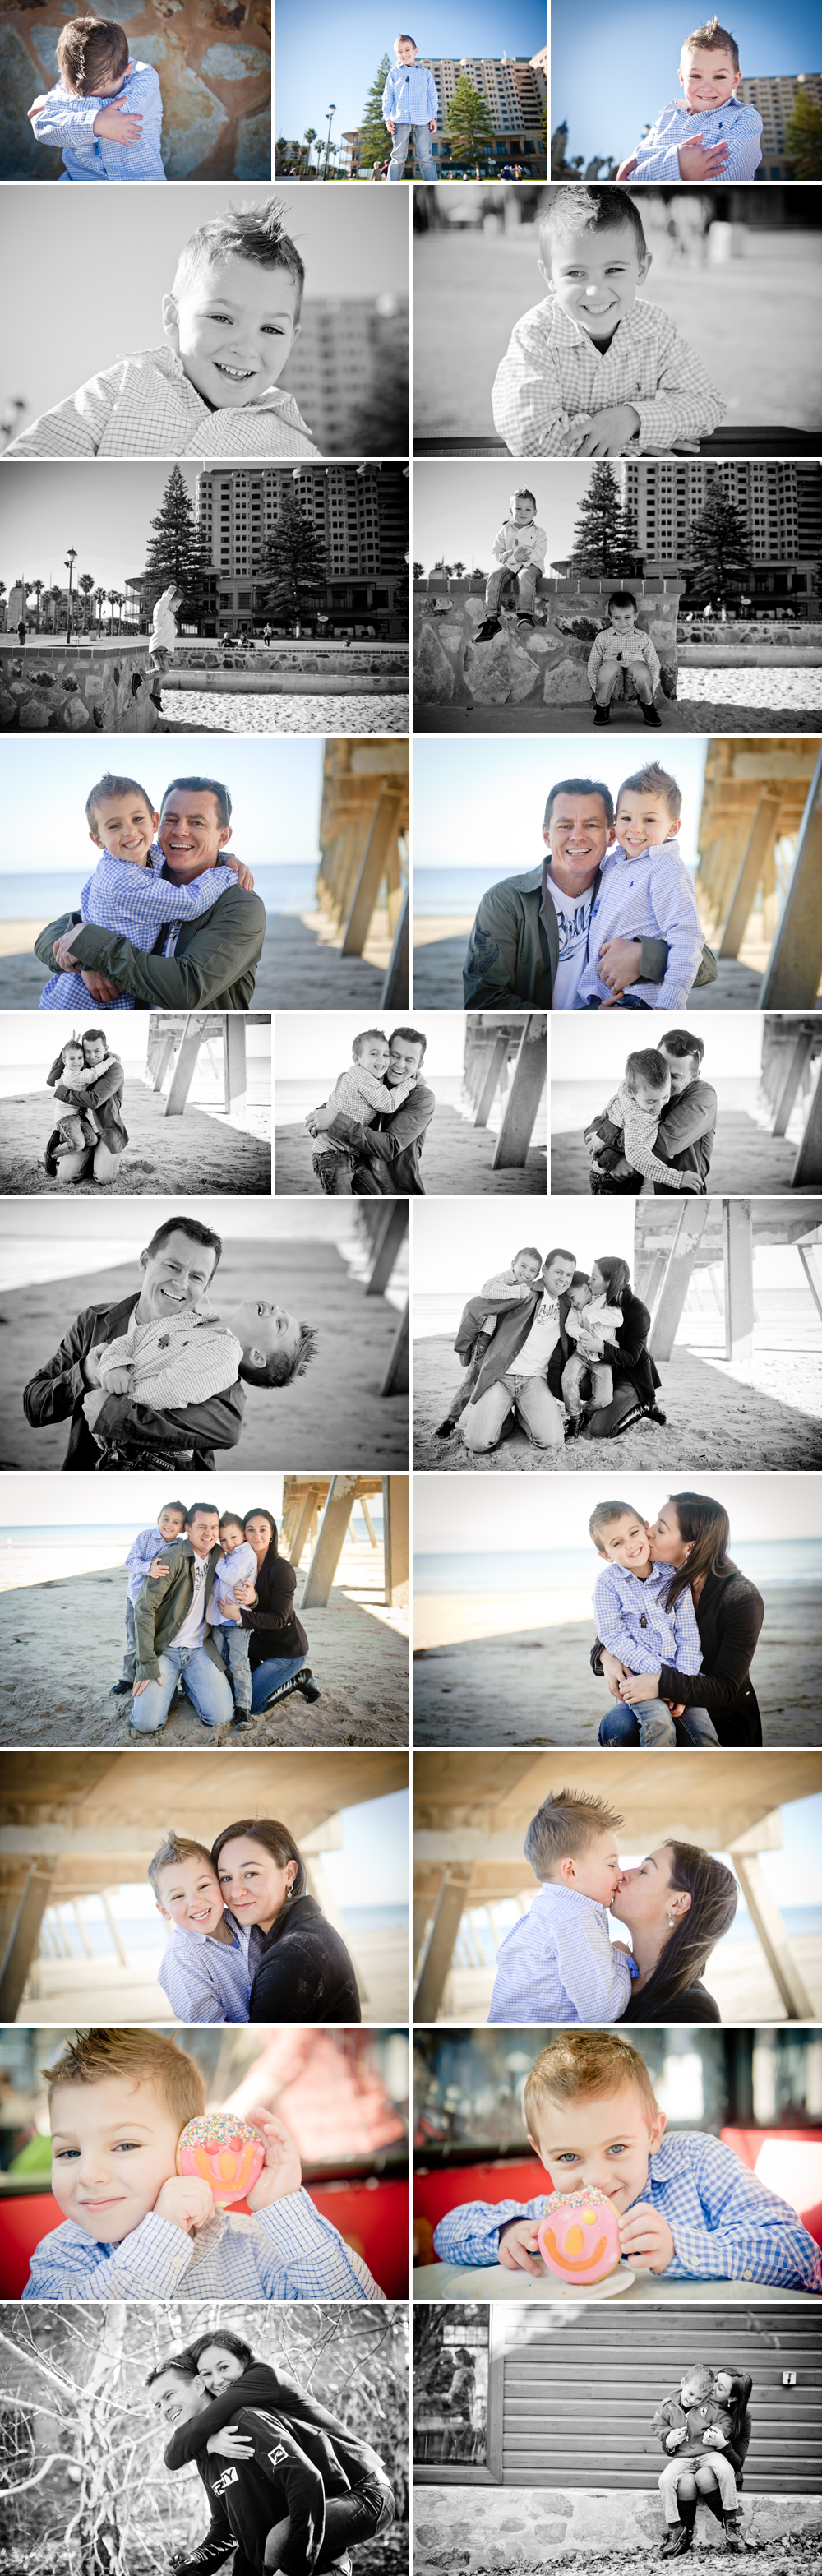 Family-on-holiday-having-photos-at-beach-in-Adelaide